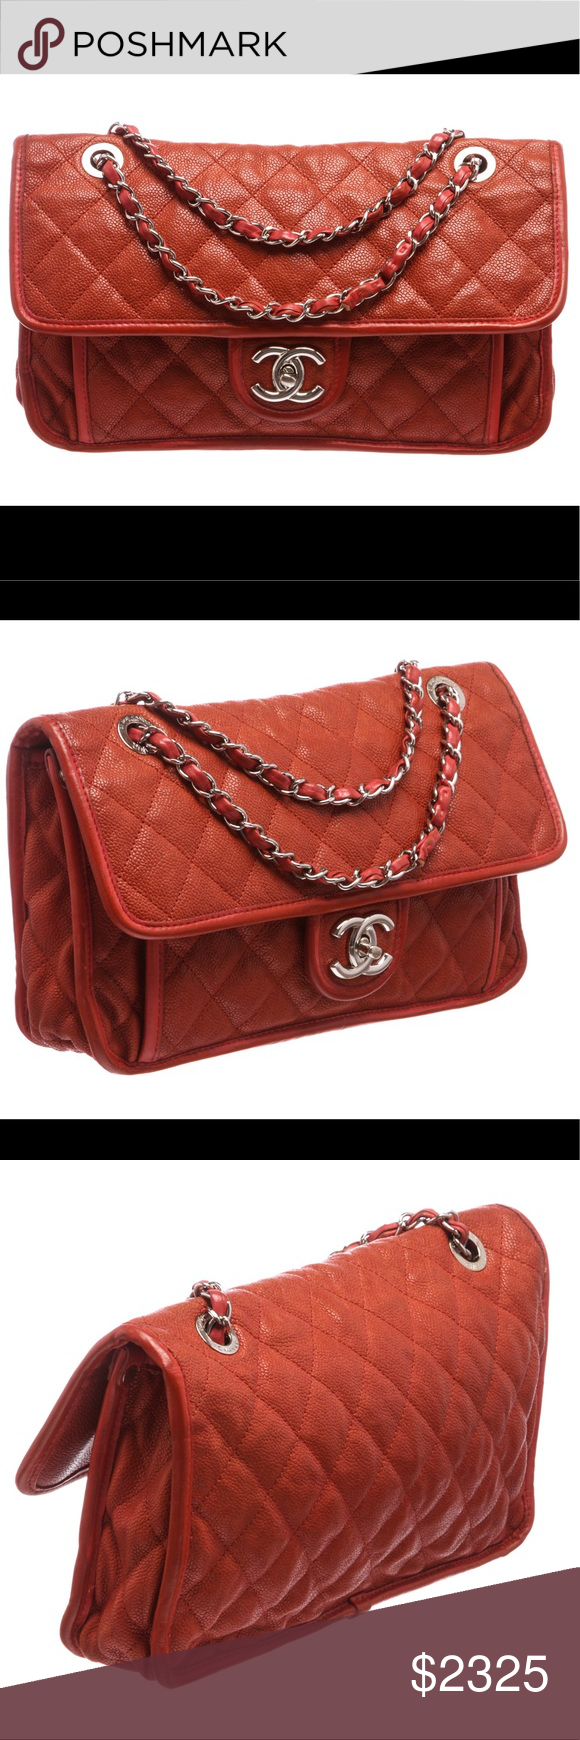 4b0dffaebb8354 Chanel Quilted Caviar Leather French Riviera Bag Brick red quilted soft Caviar  leather Chanel Medium French